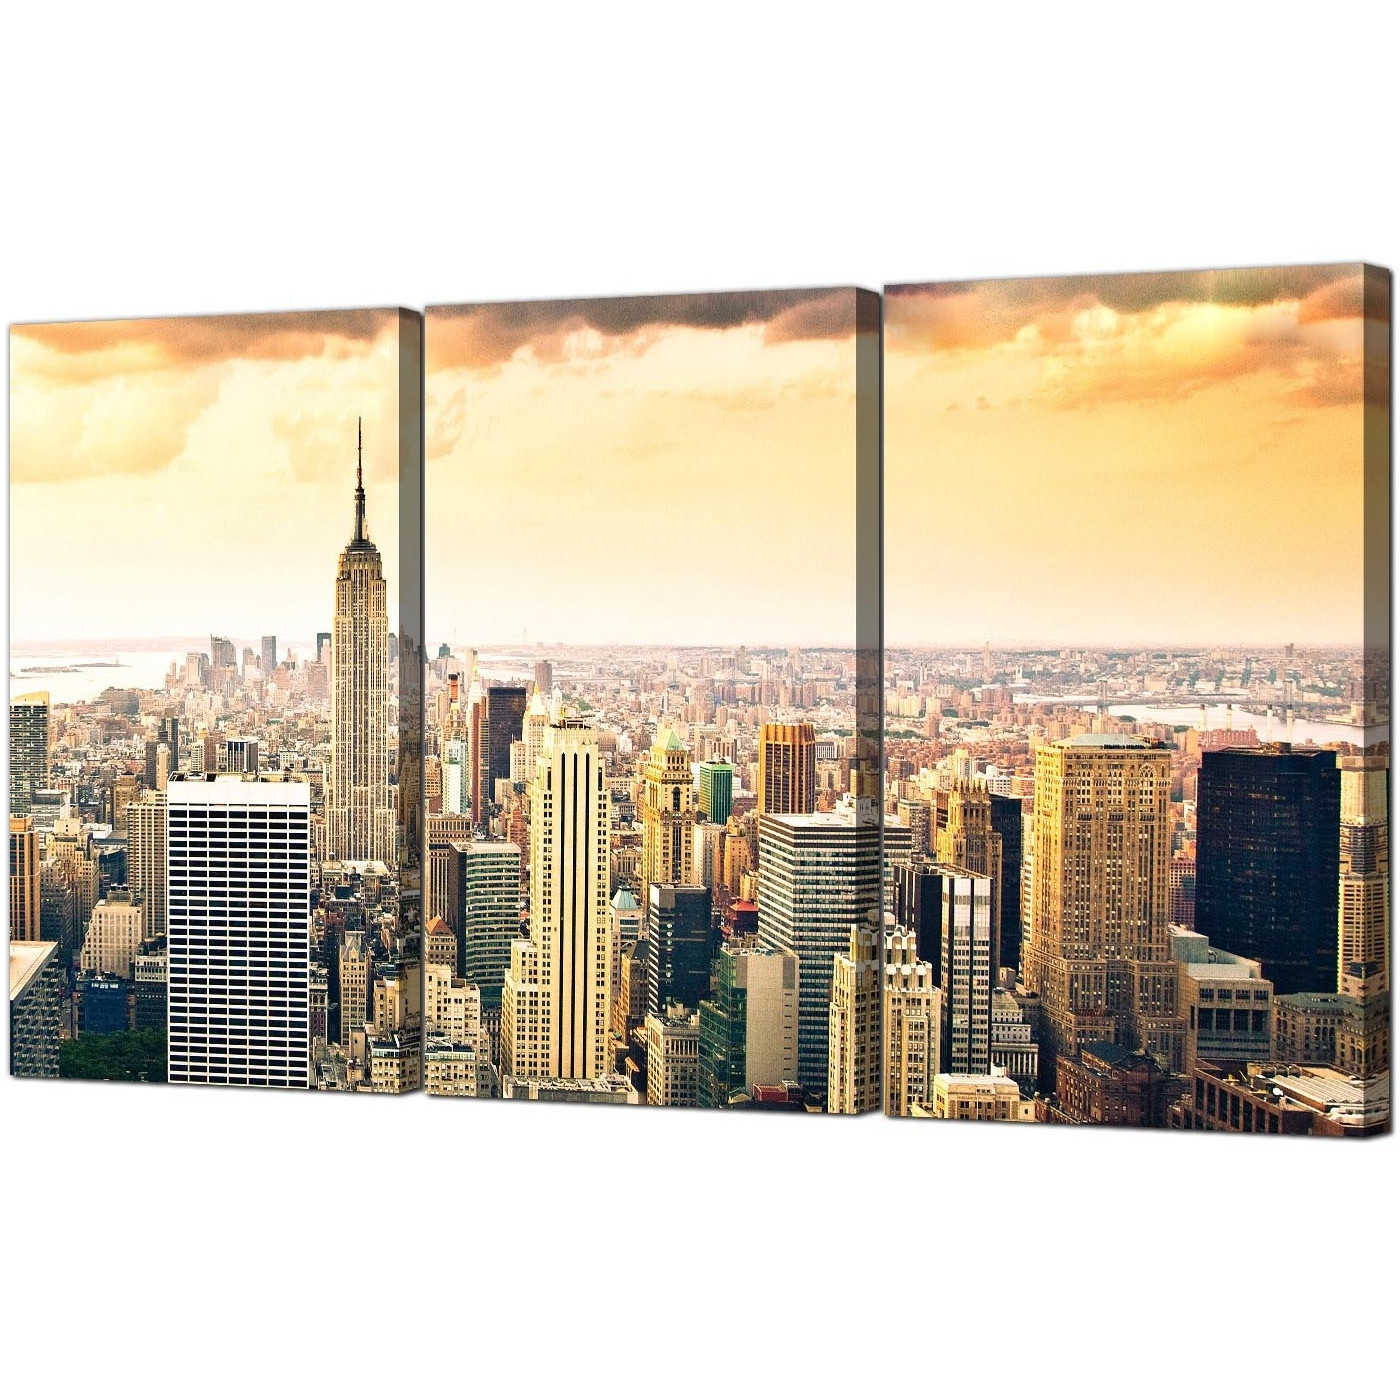 Most Current New York Canvas Wall Art For Extra Large New York Skyline Canvas Pictures 3 Panel For Your Bedroom (View 4 of 15)